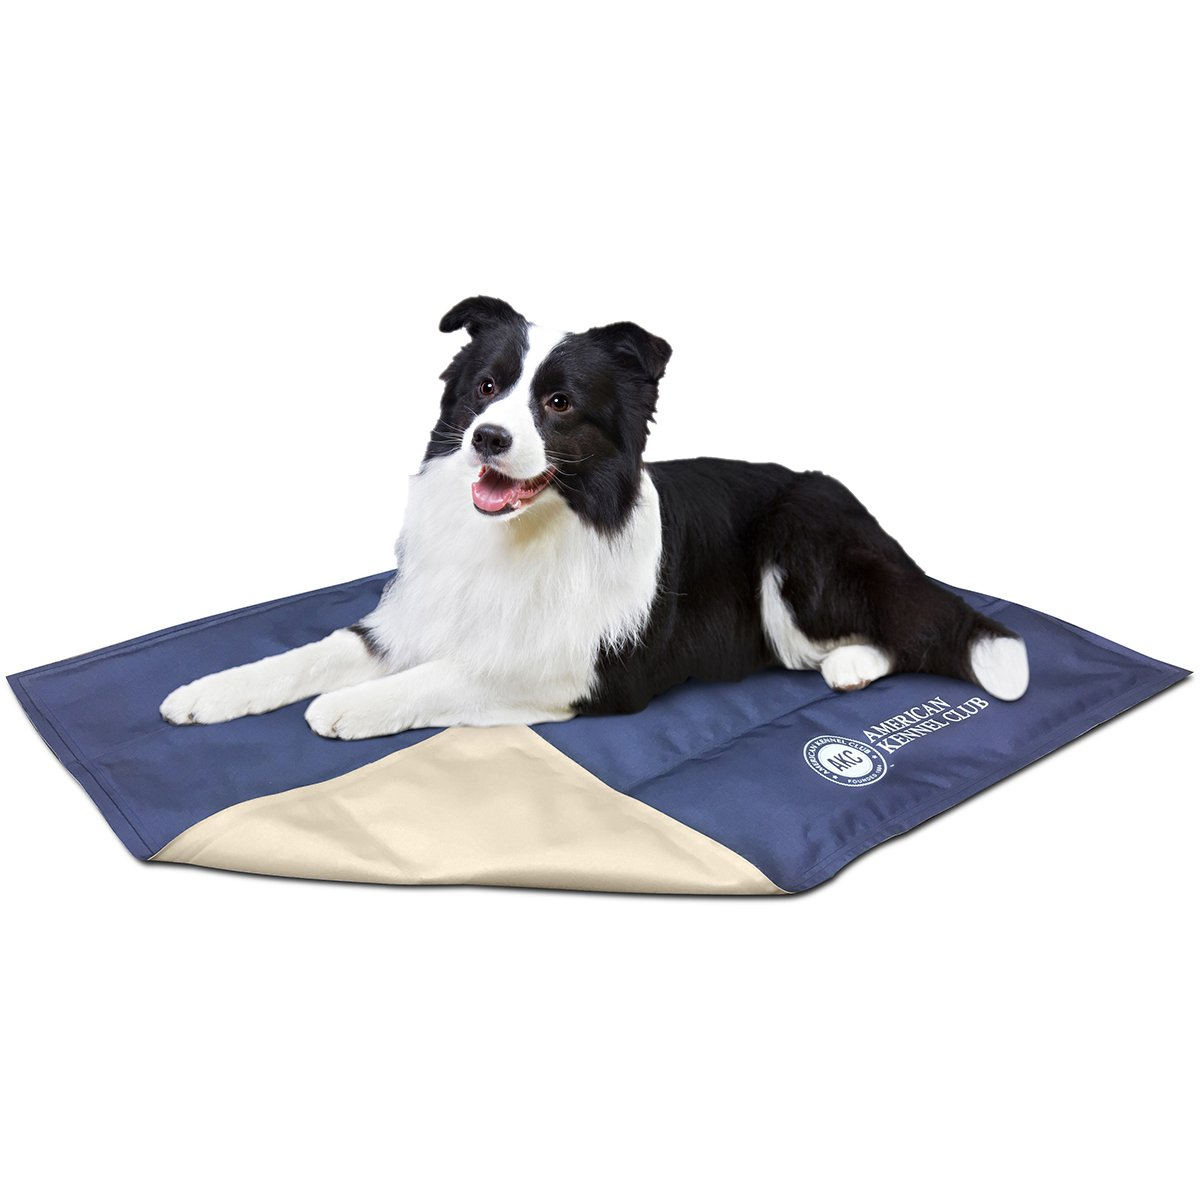 AKC625-blueE AKC625-blueE American Kennel Club Solid Reversible Cooling Mat 26 X20 -bluee